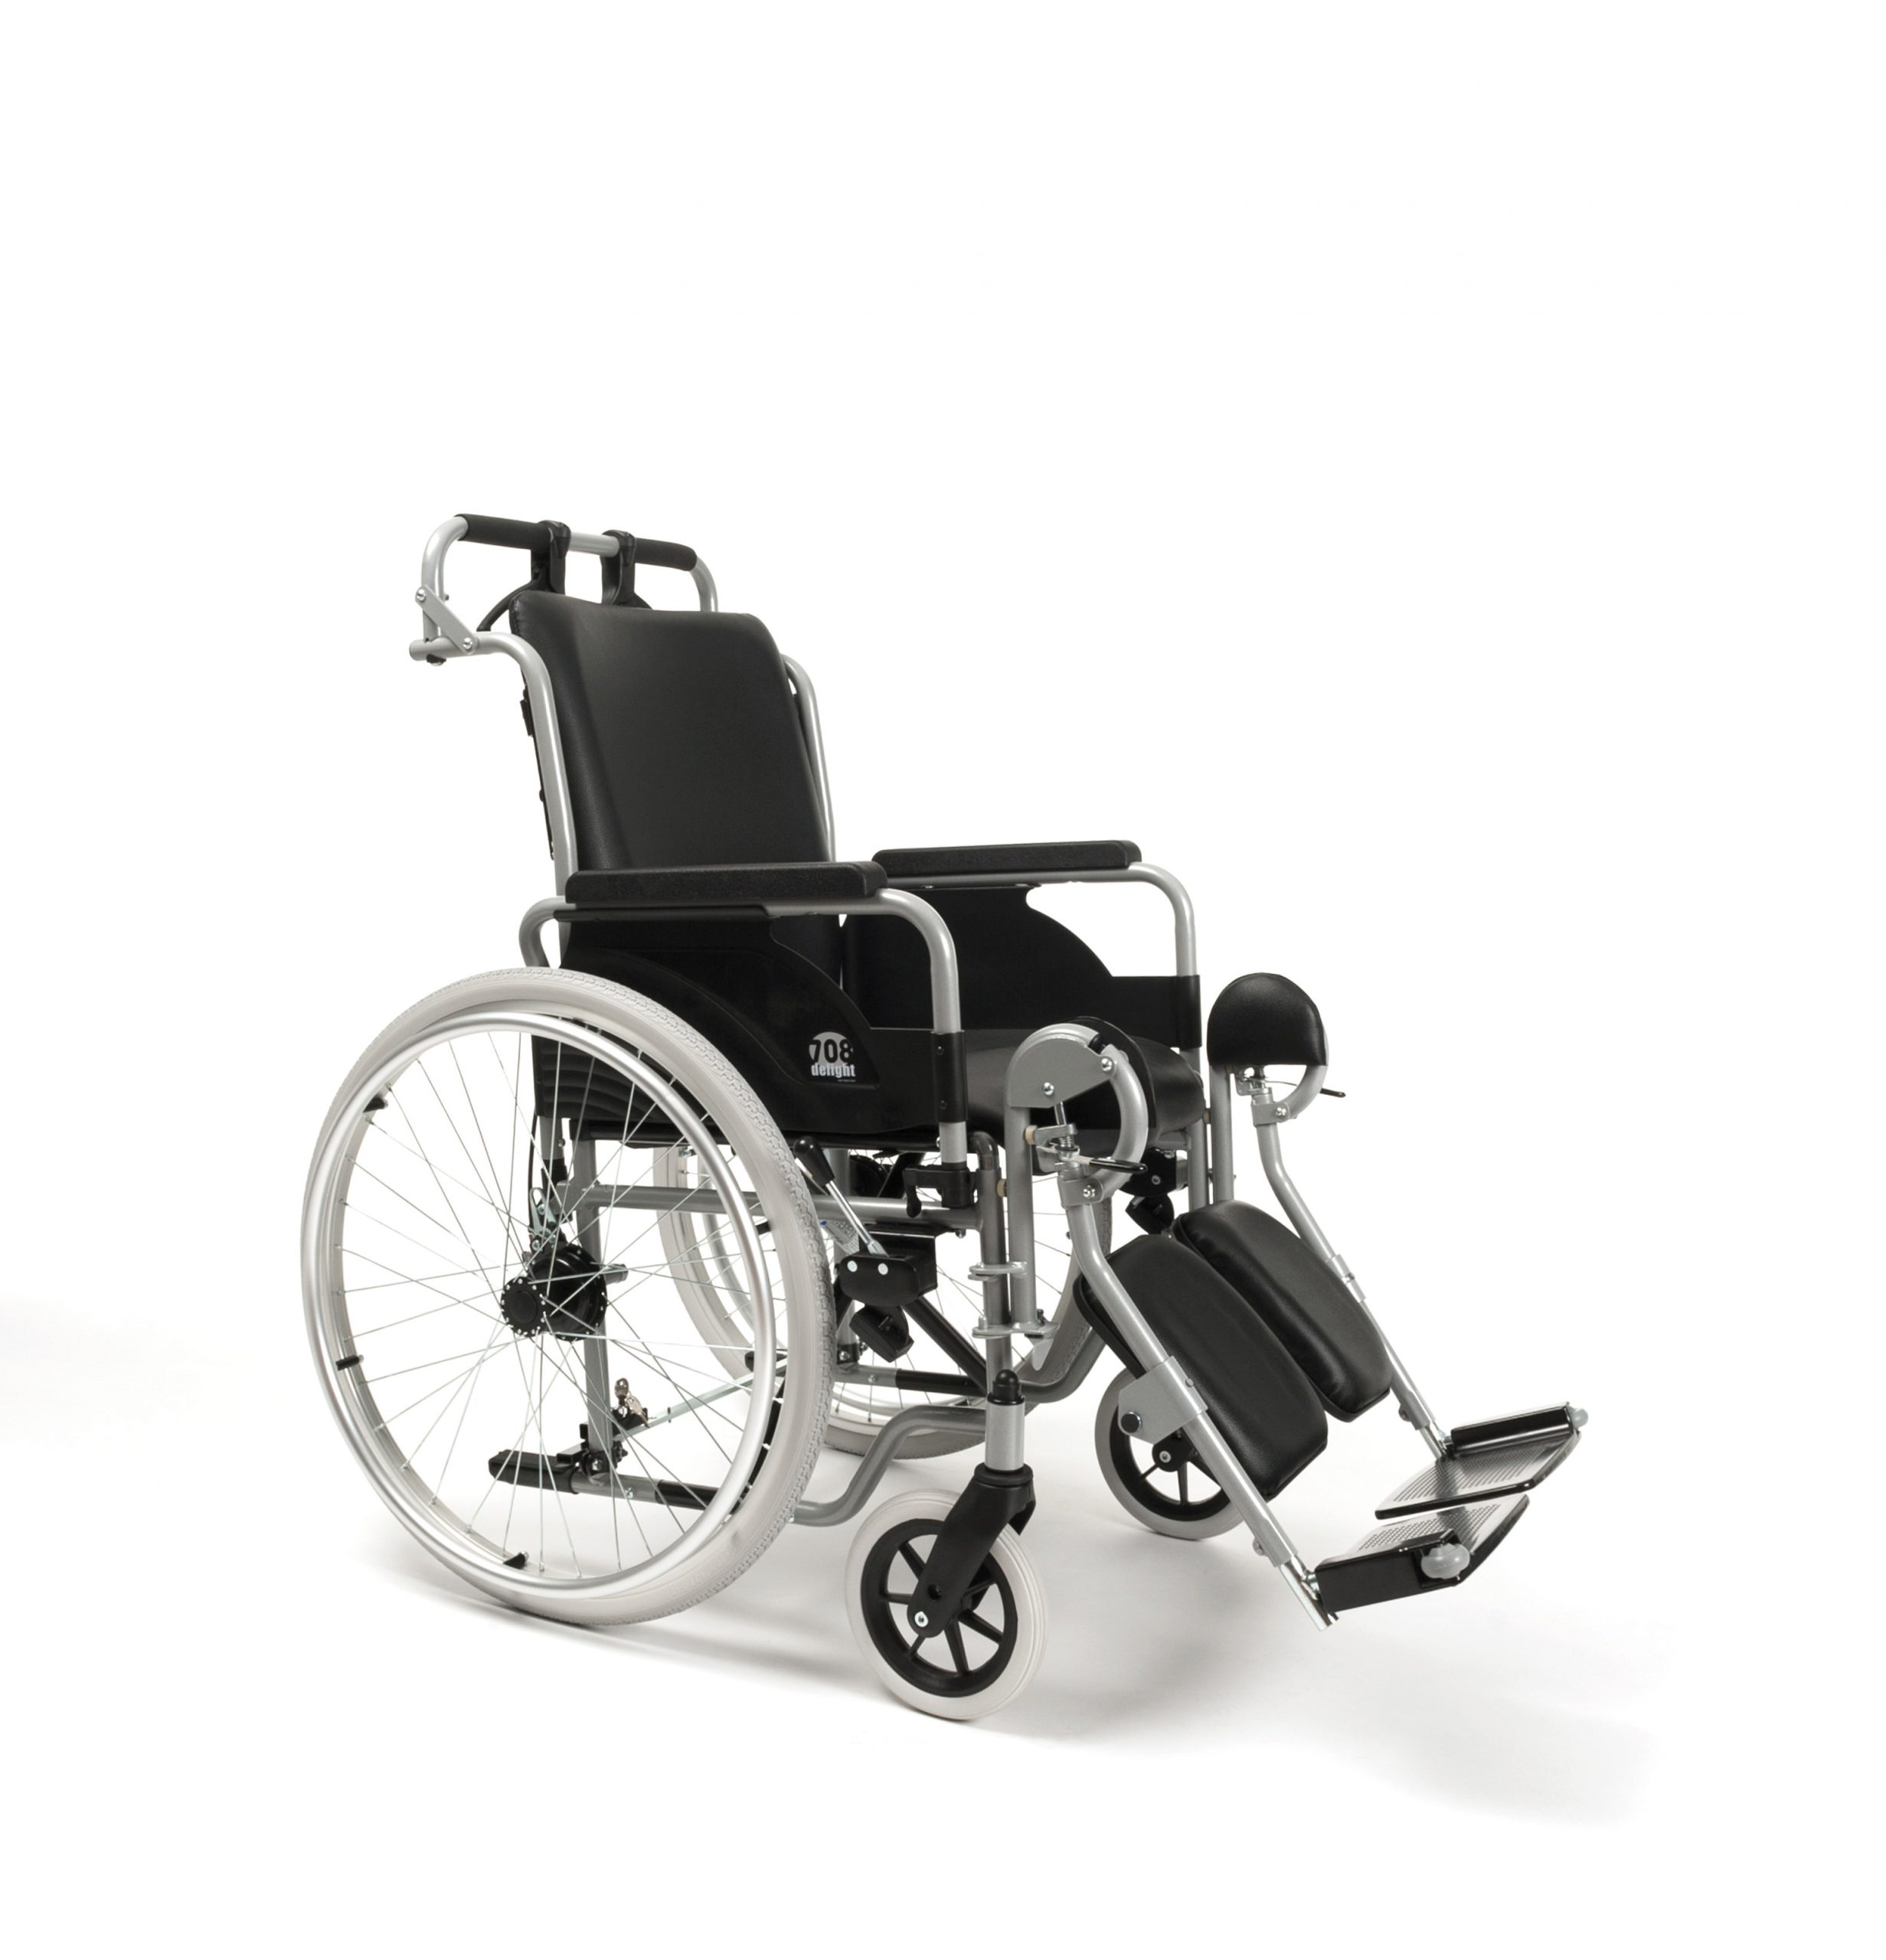 708D airport wheelchair